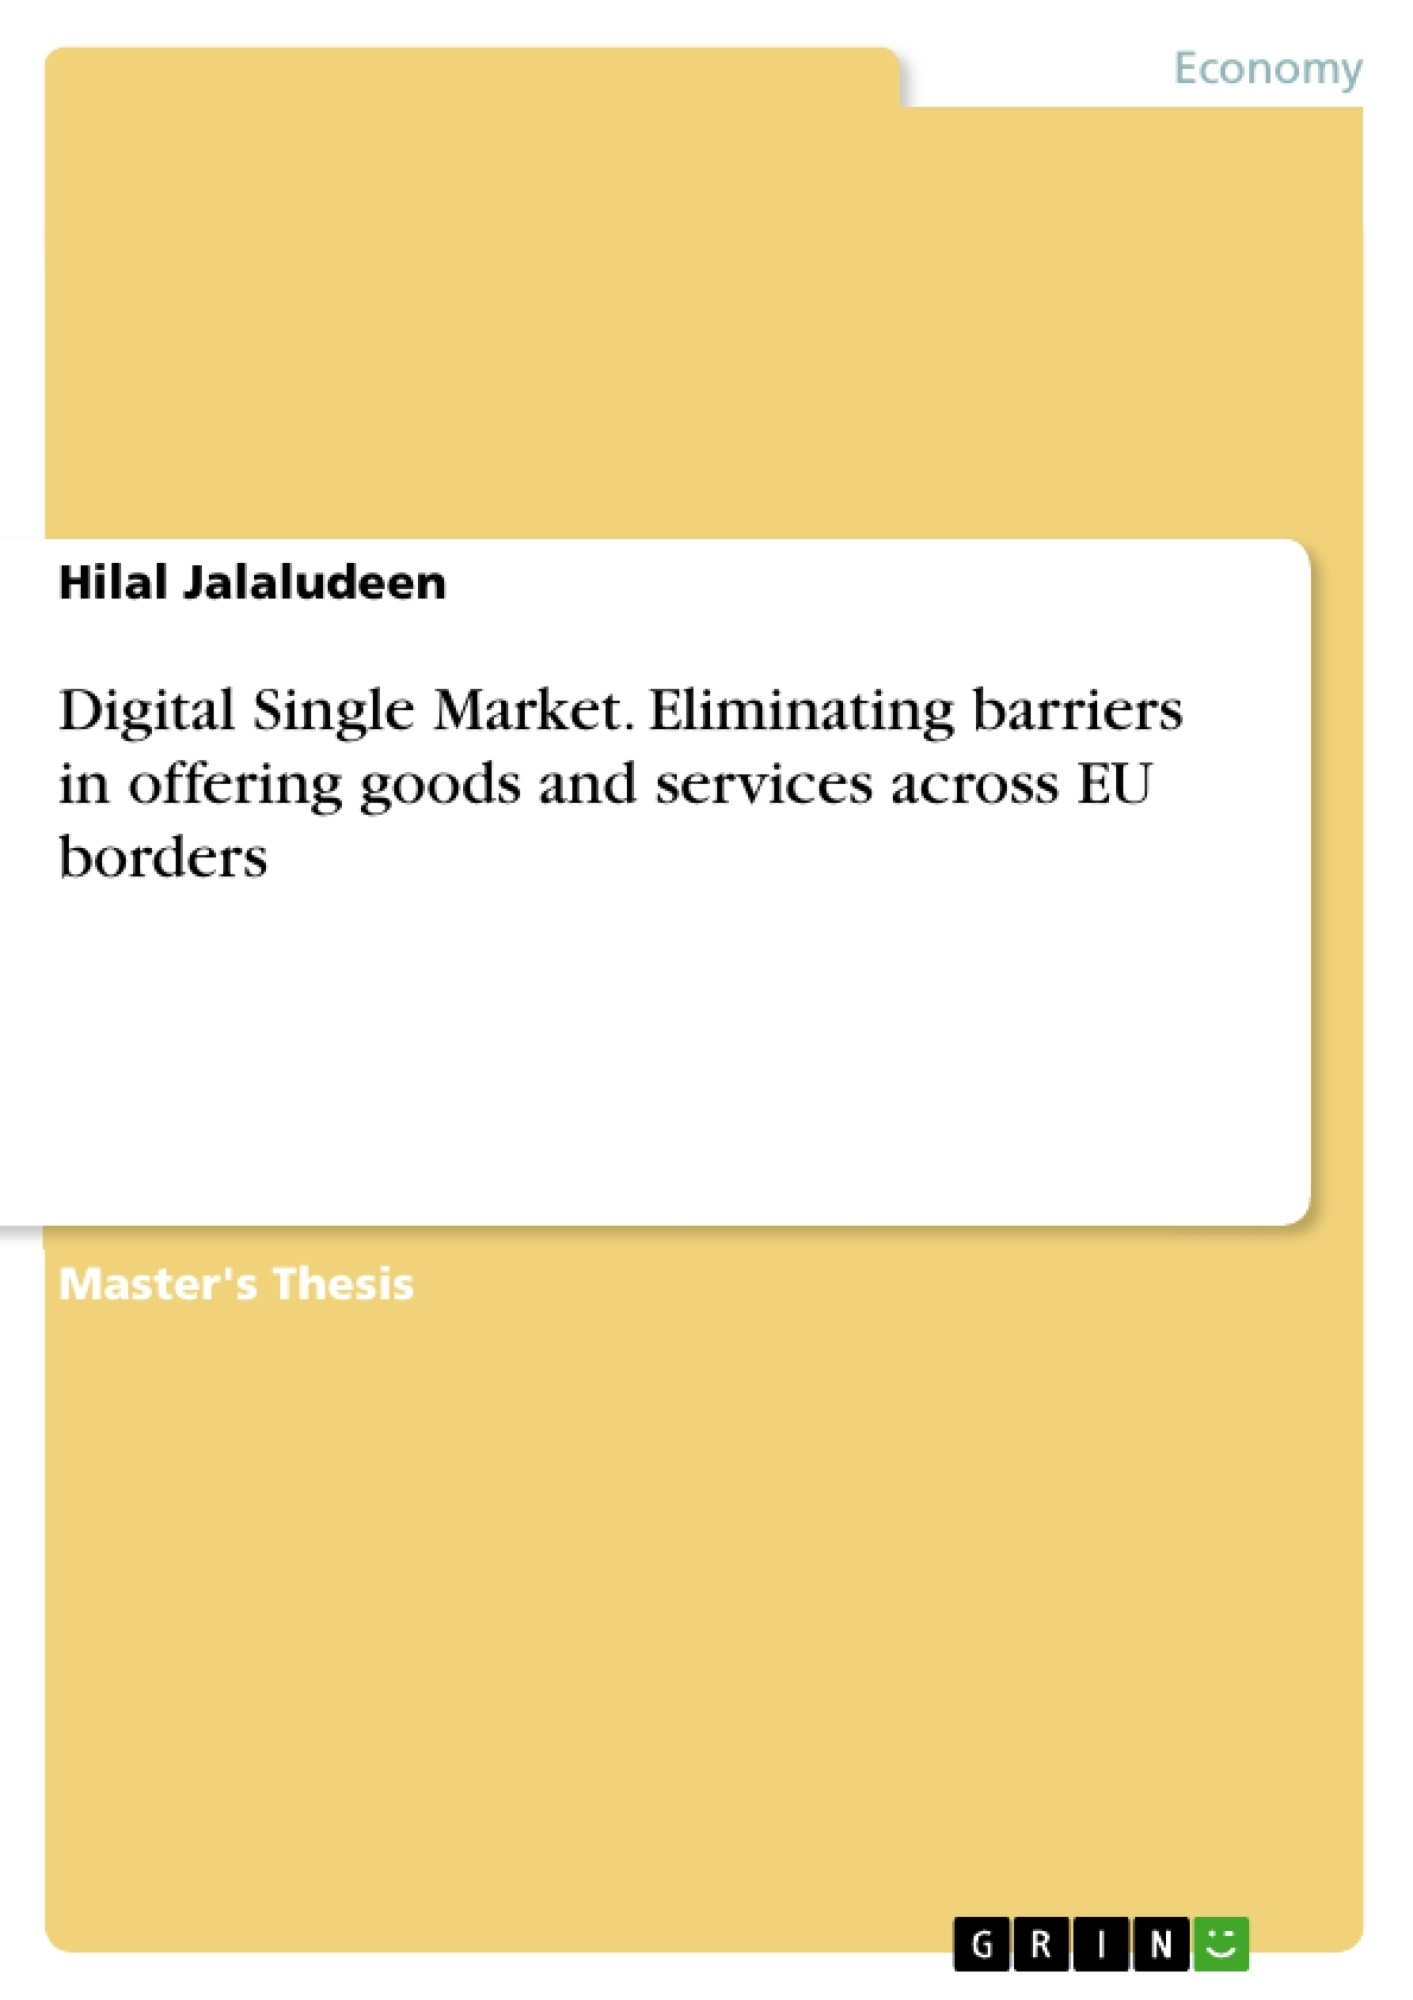 Title: Digital Single Market. Eliminating barriers in offering goods and services across EU borders